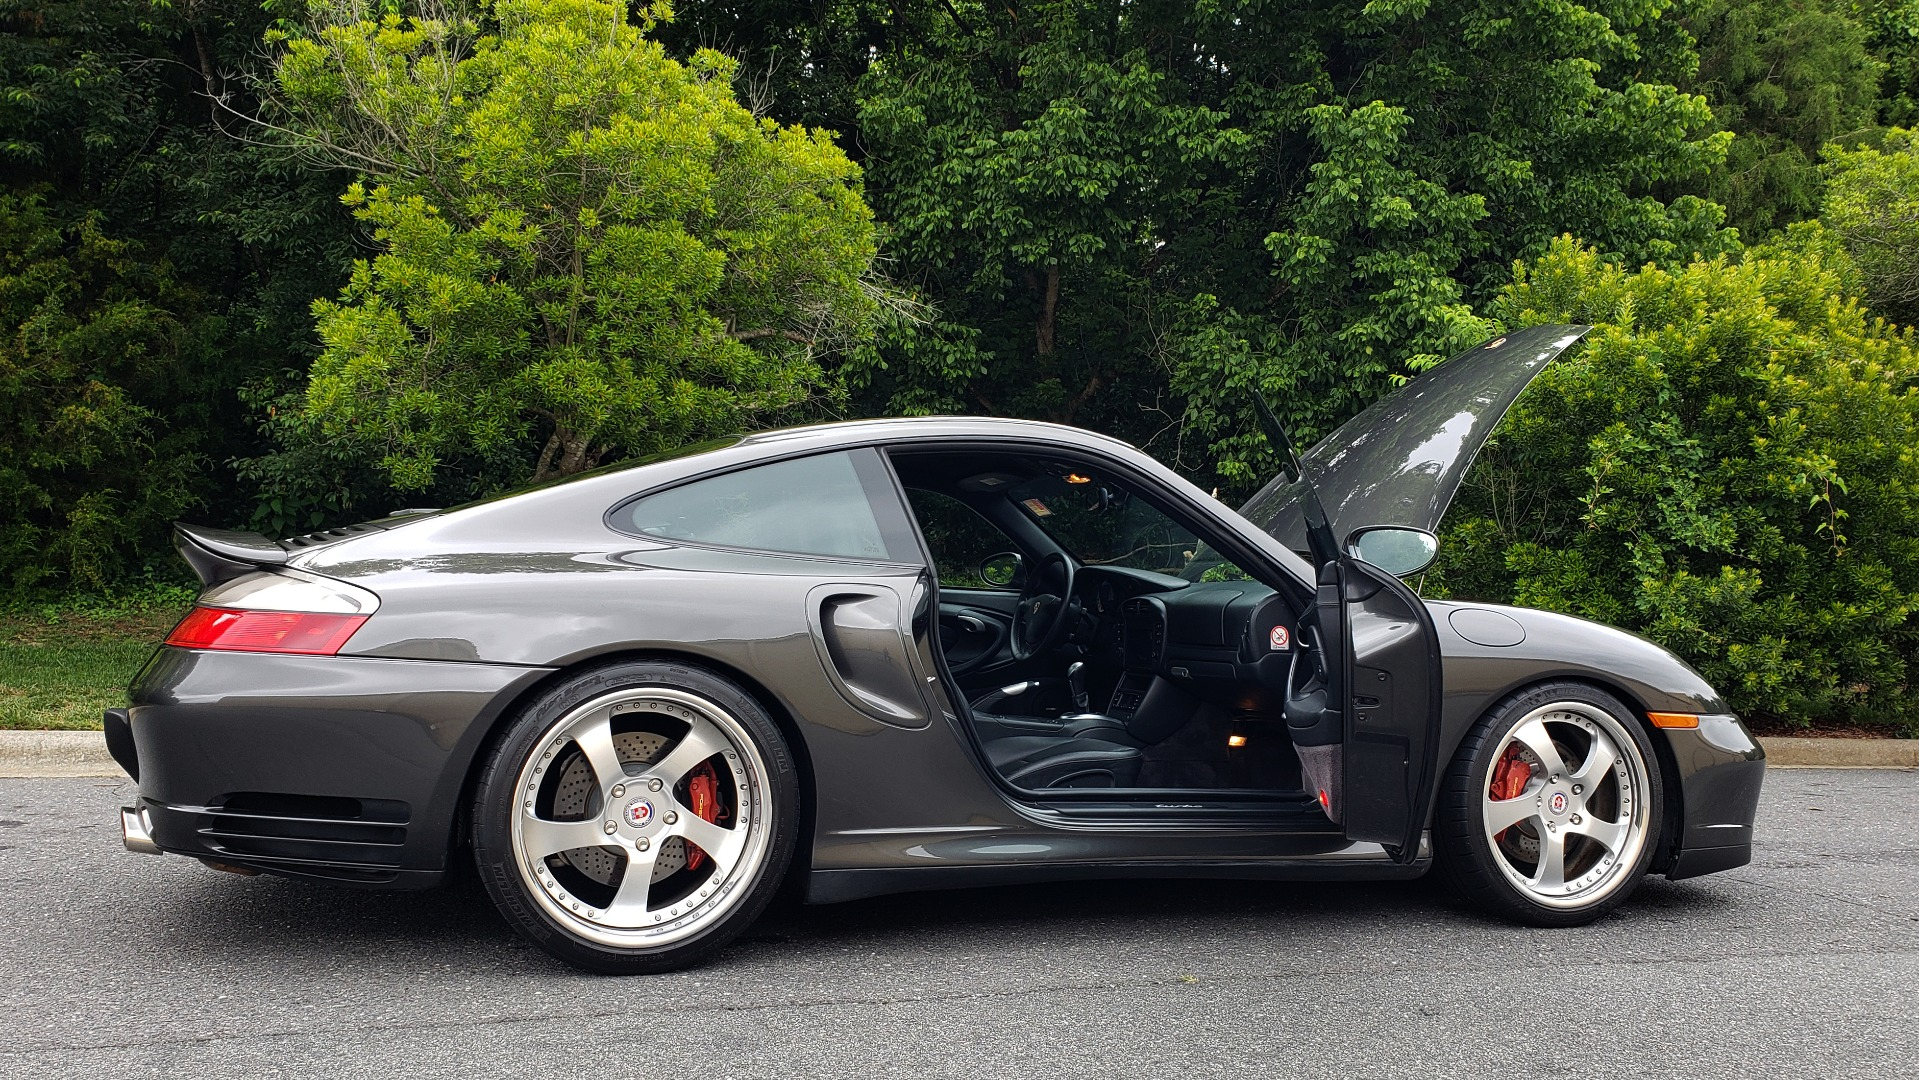 Used 2002 Porsche 911 CARRERA TURBO COUPE / 6-SPD MANUAL / PERF UPGRADES & CUSTOM TUNE for sale Sold at Formula Imports in Charlotte NC 28227 12